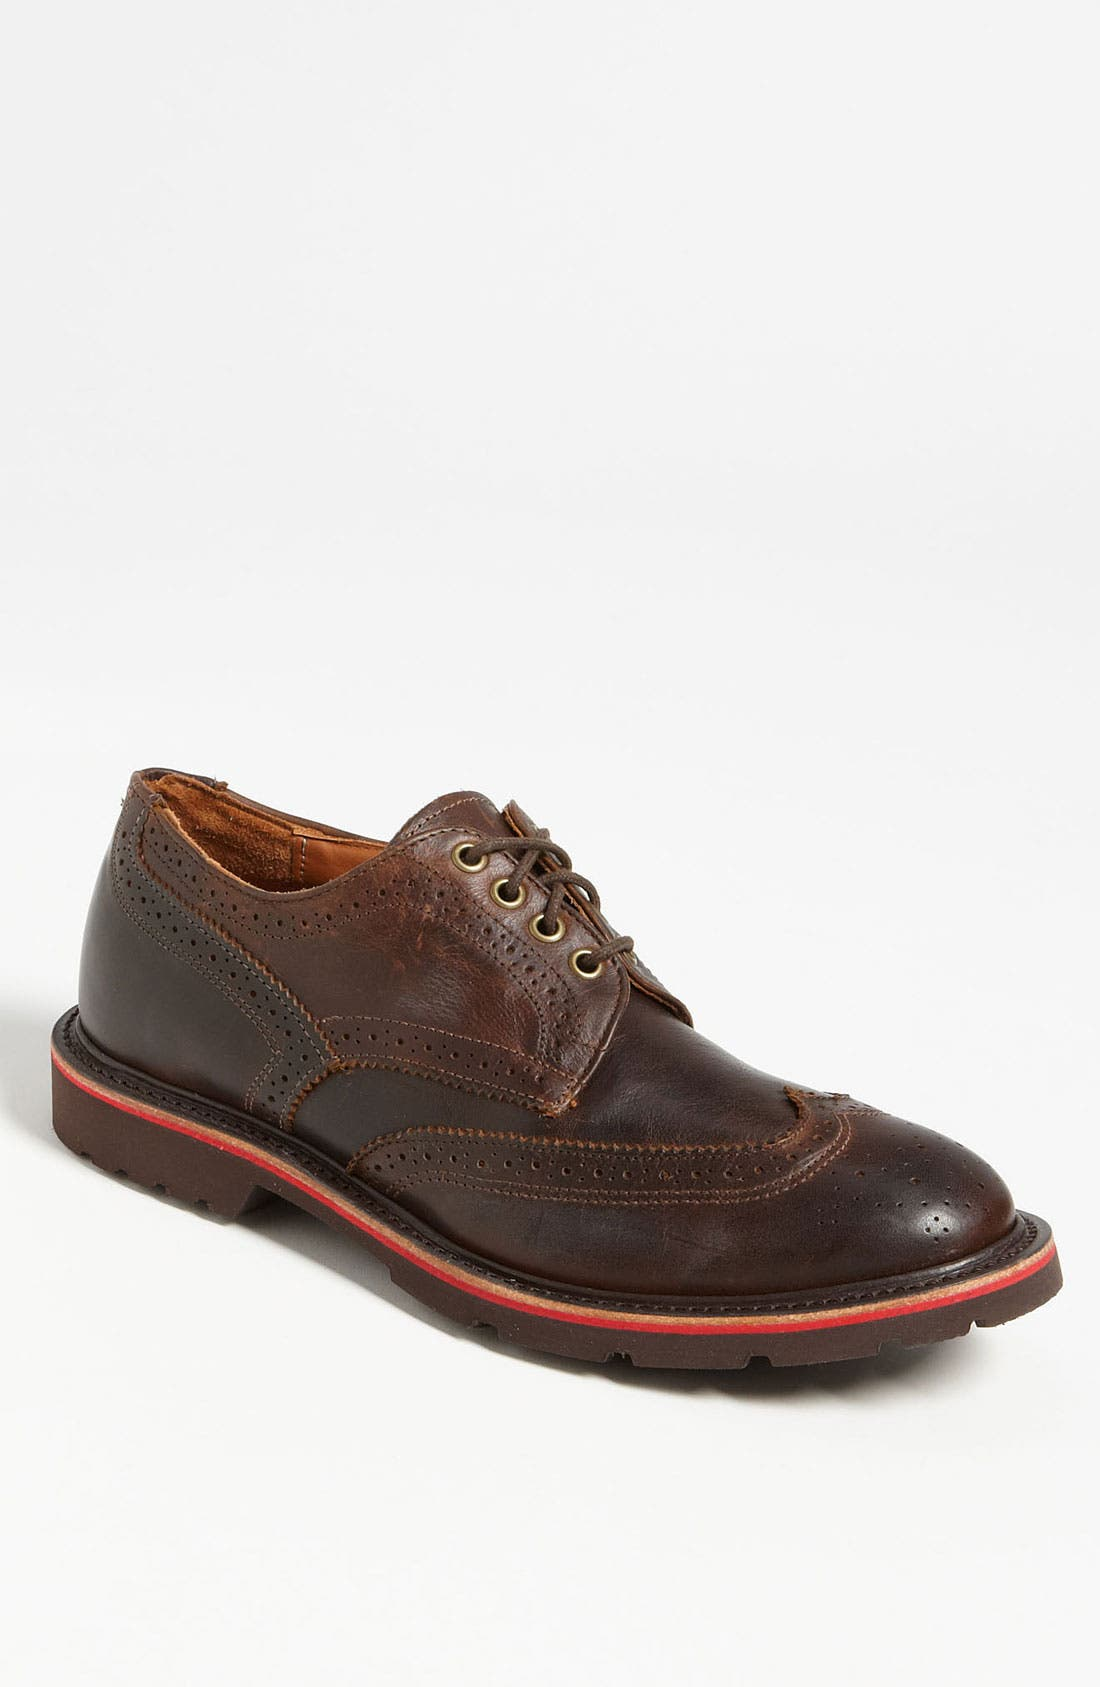 Alternate Image 1 Selected - Walk-Over 'Franklin' Wingtip